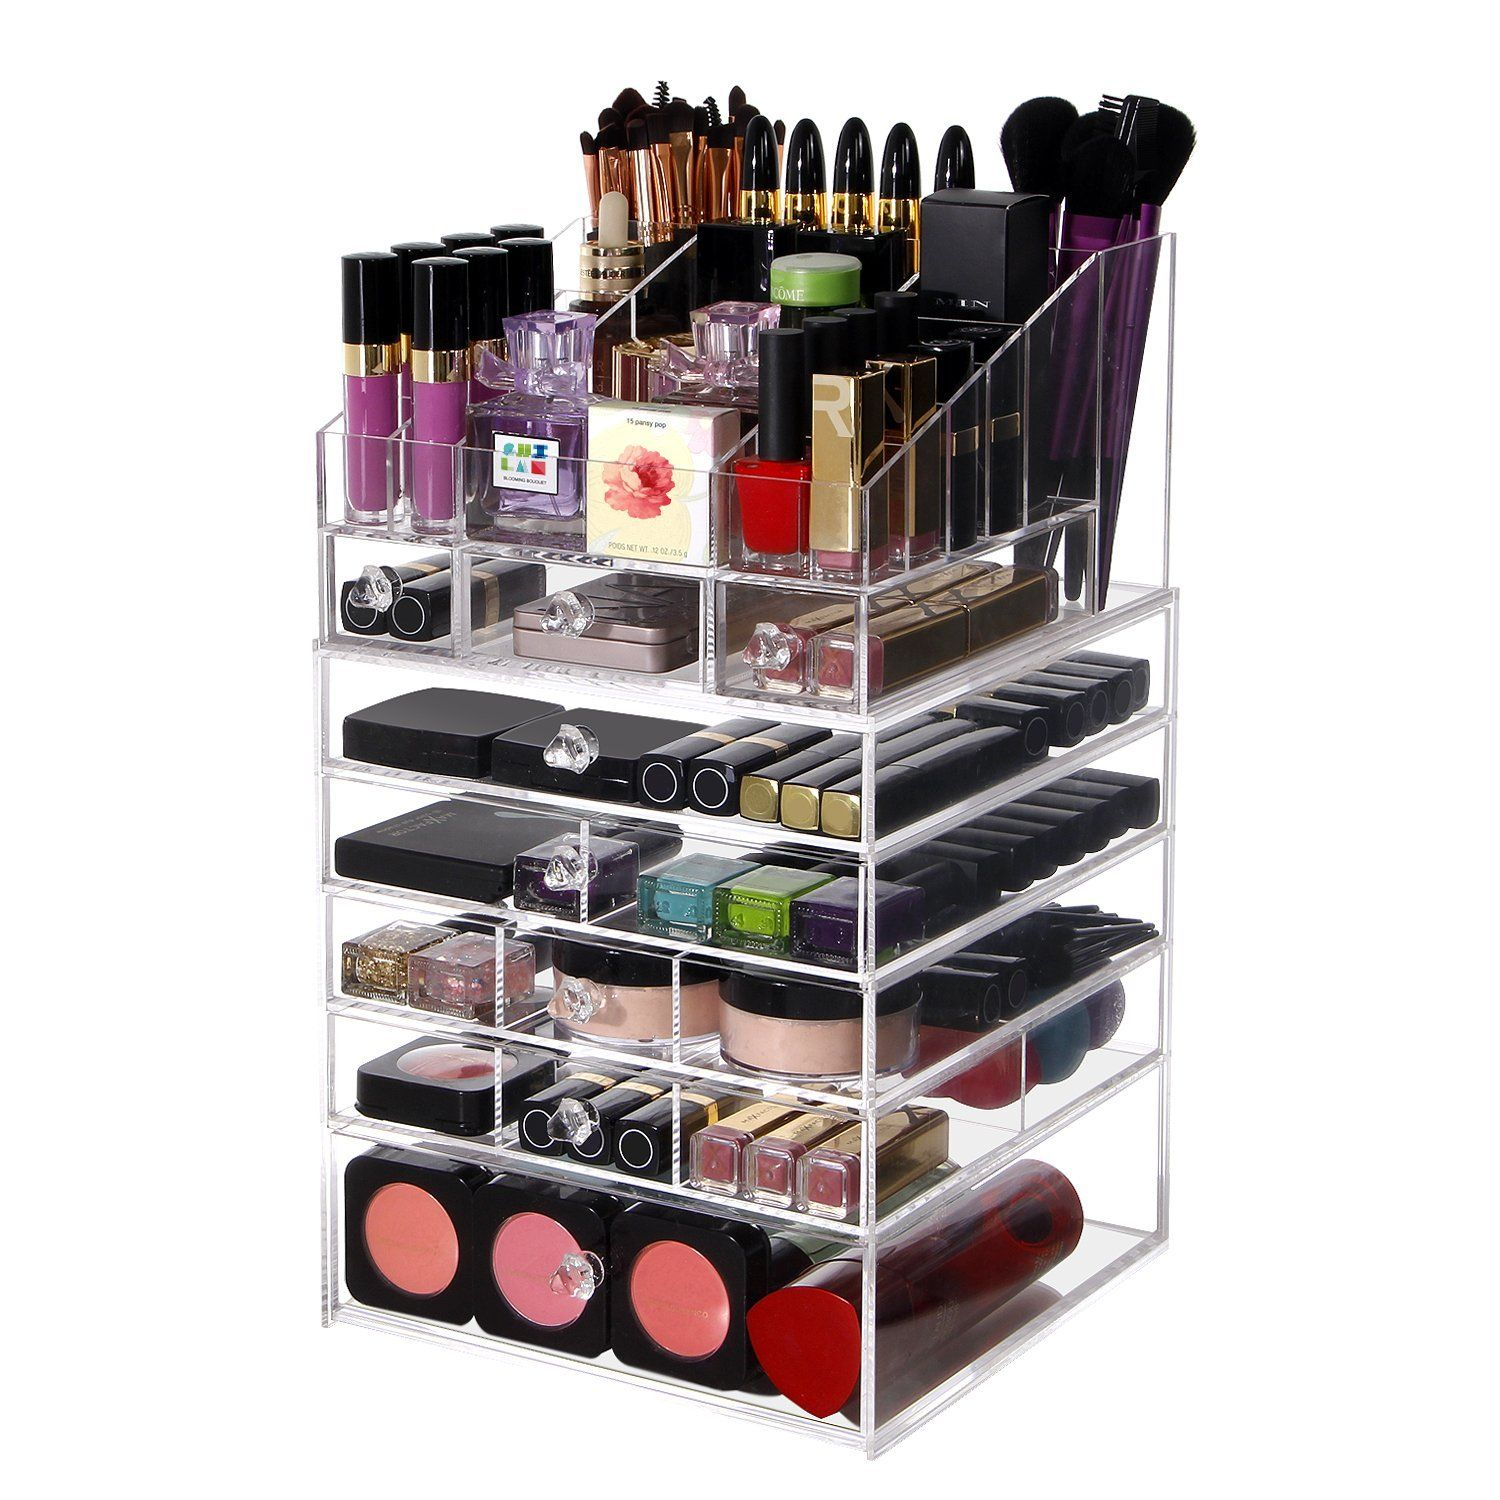 Lifewit Large 6 Tier Drawers Acrylic Makeup Organizer with Top Storage  Tray, Handmade Multi-